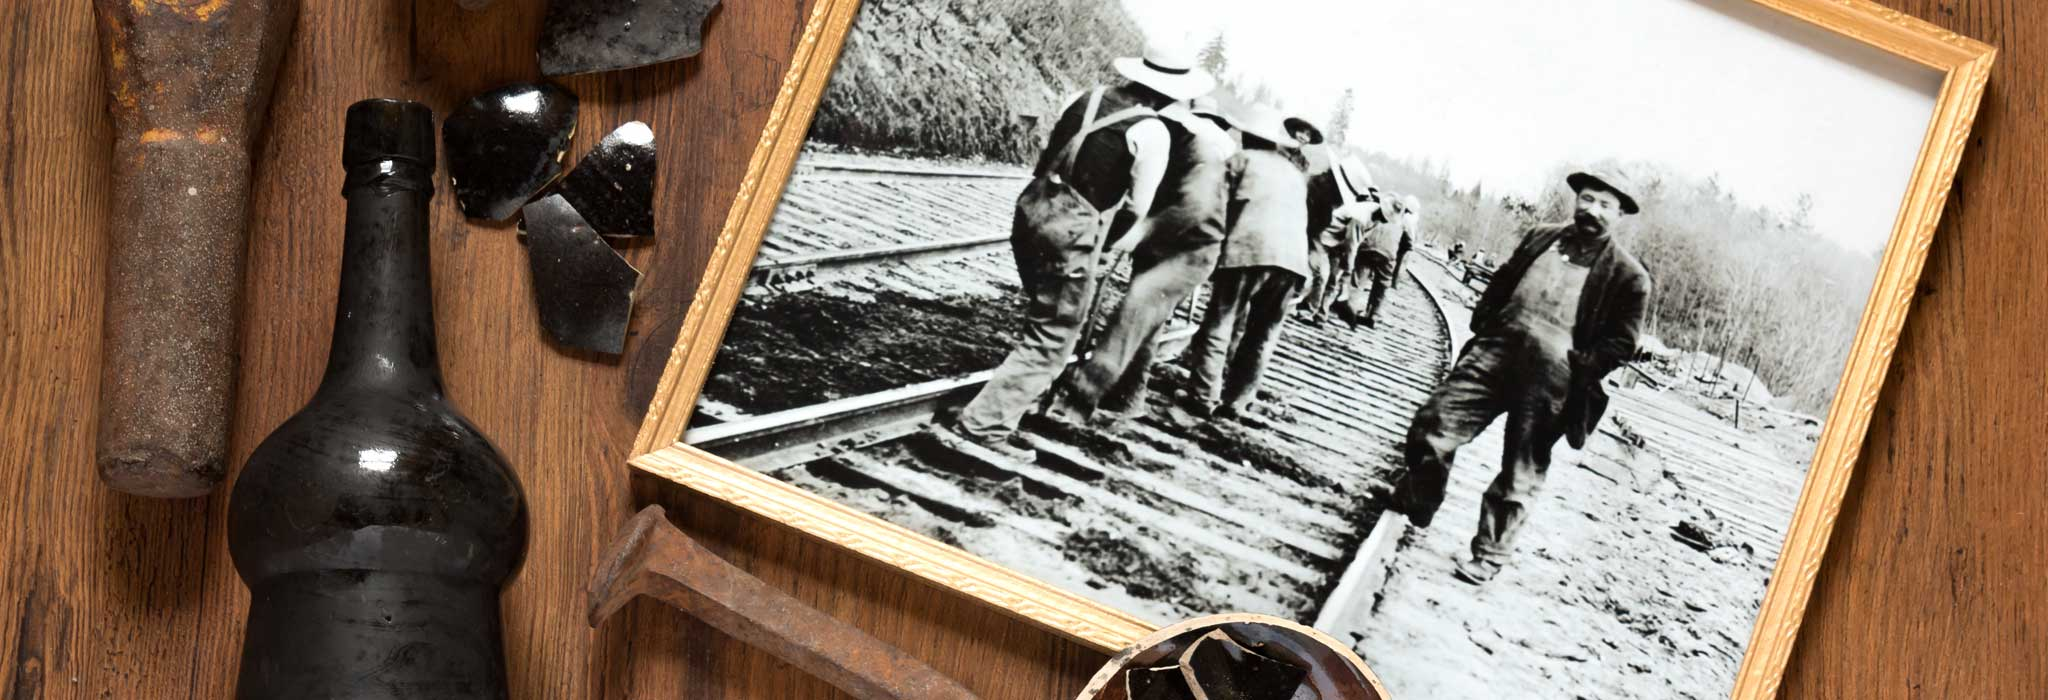 Black and White picture of men working on a railway surrounded by artifacts